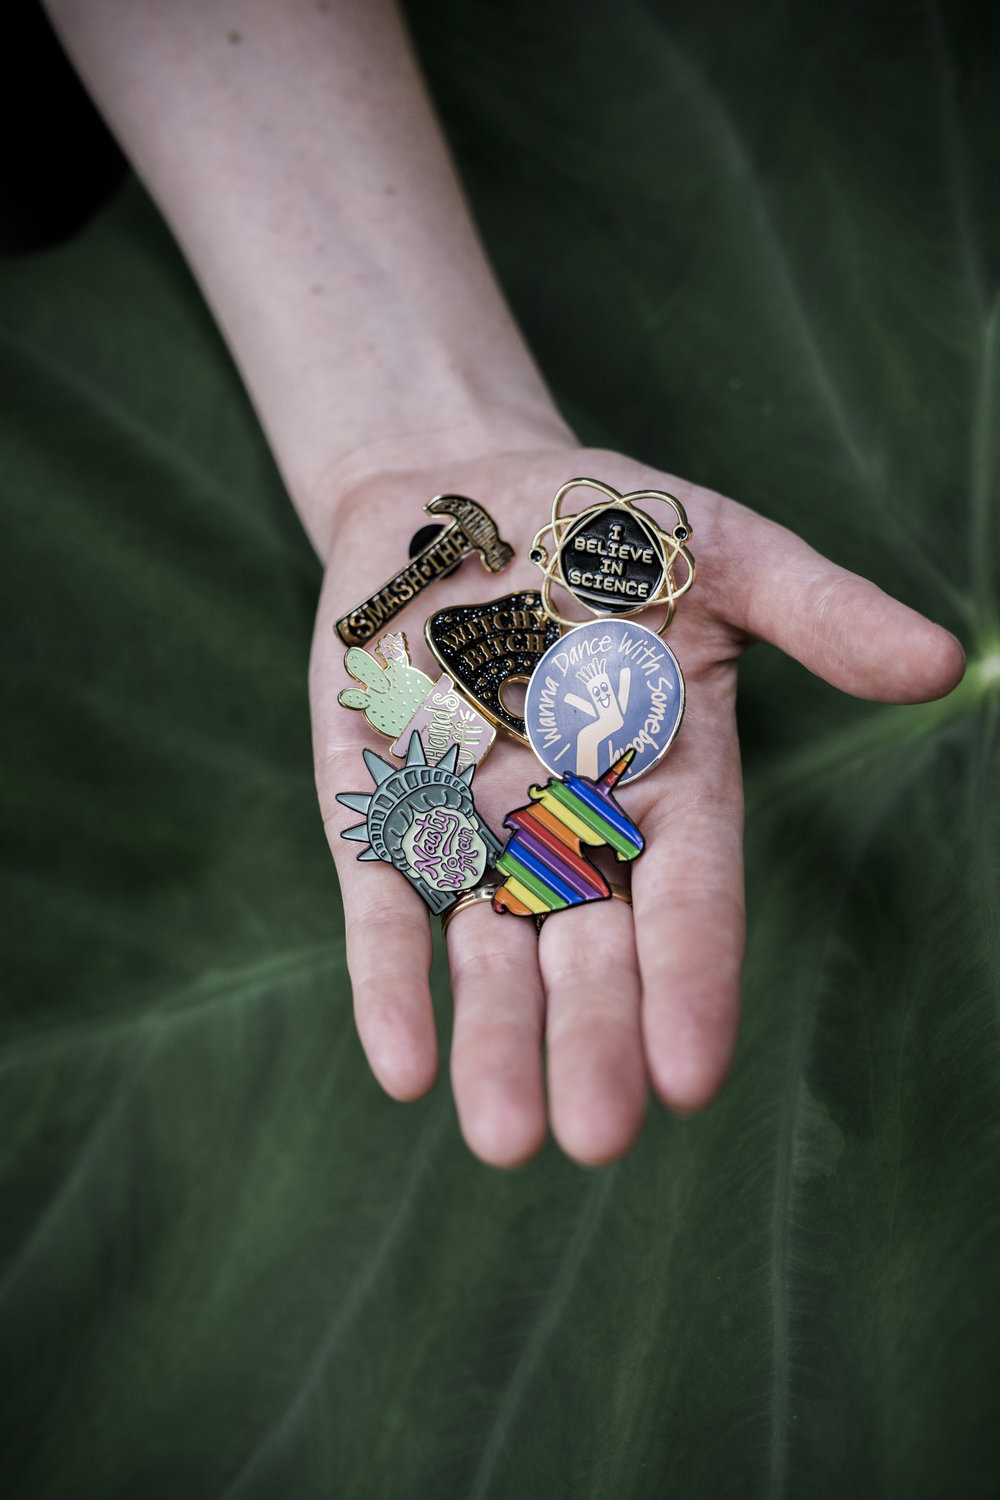 Nasty Woman, Smash the Patriarchy, I Wanna Dance with Somebody, Hands Off, Witchy Bitch, I Believe in Science... these are few enamel lapel pins created Bang-Up Betty in Arkansas.